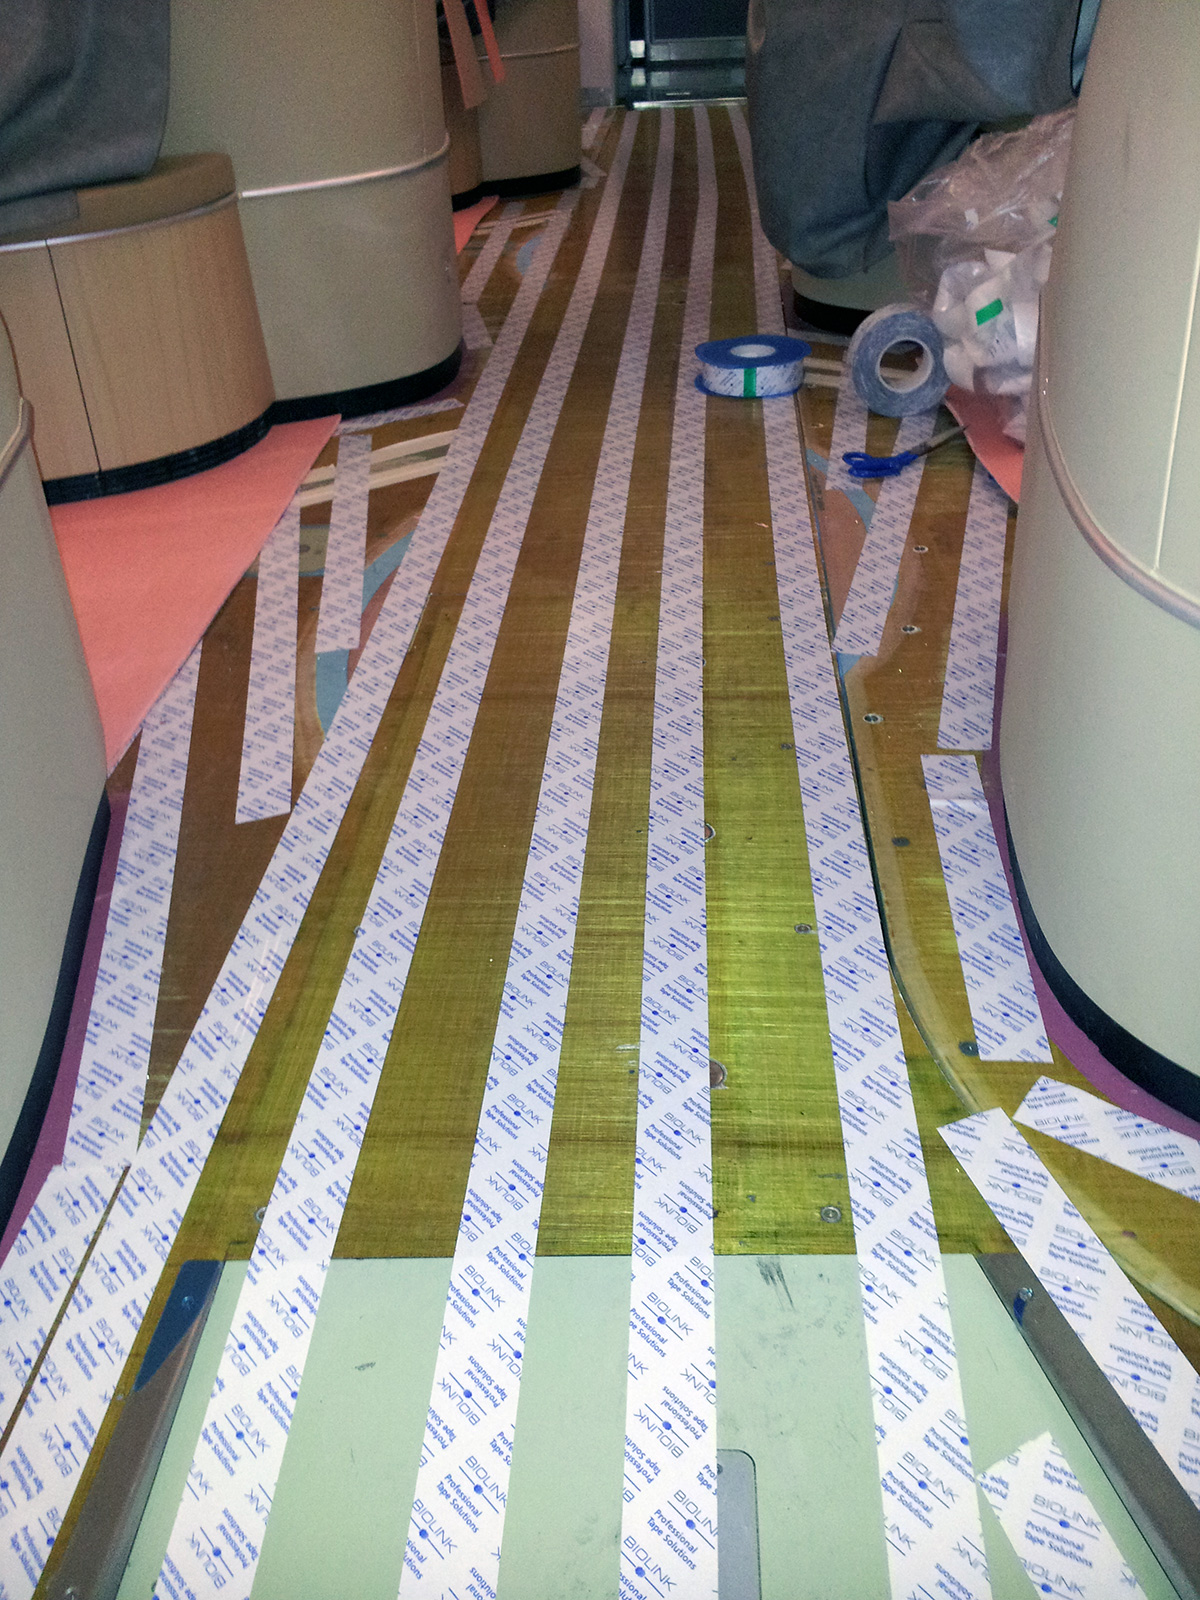 Pose moquette A380 zone first class phase d'installation